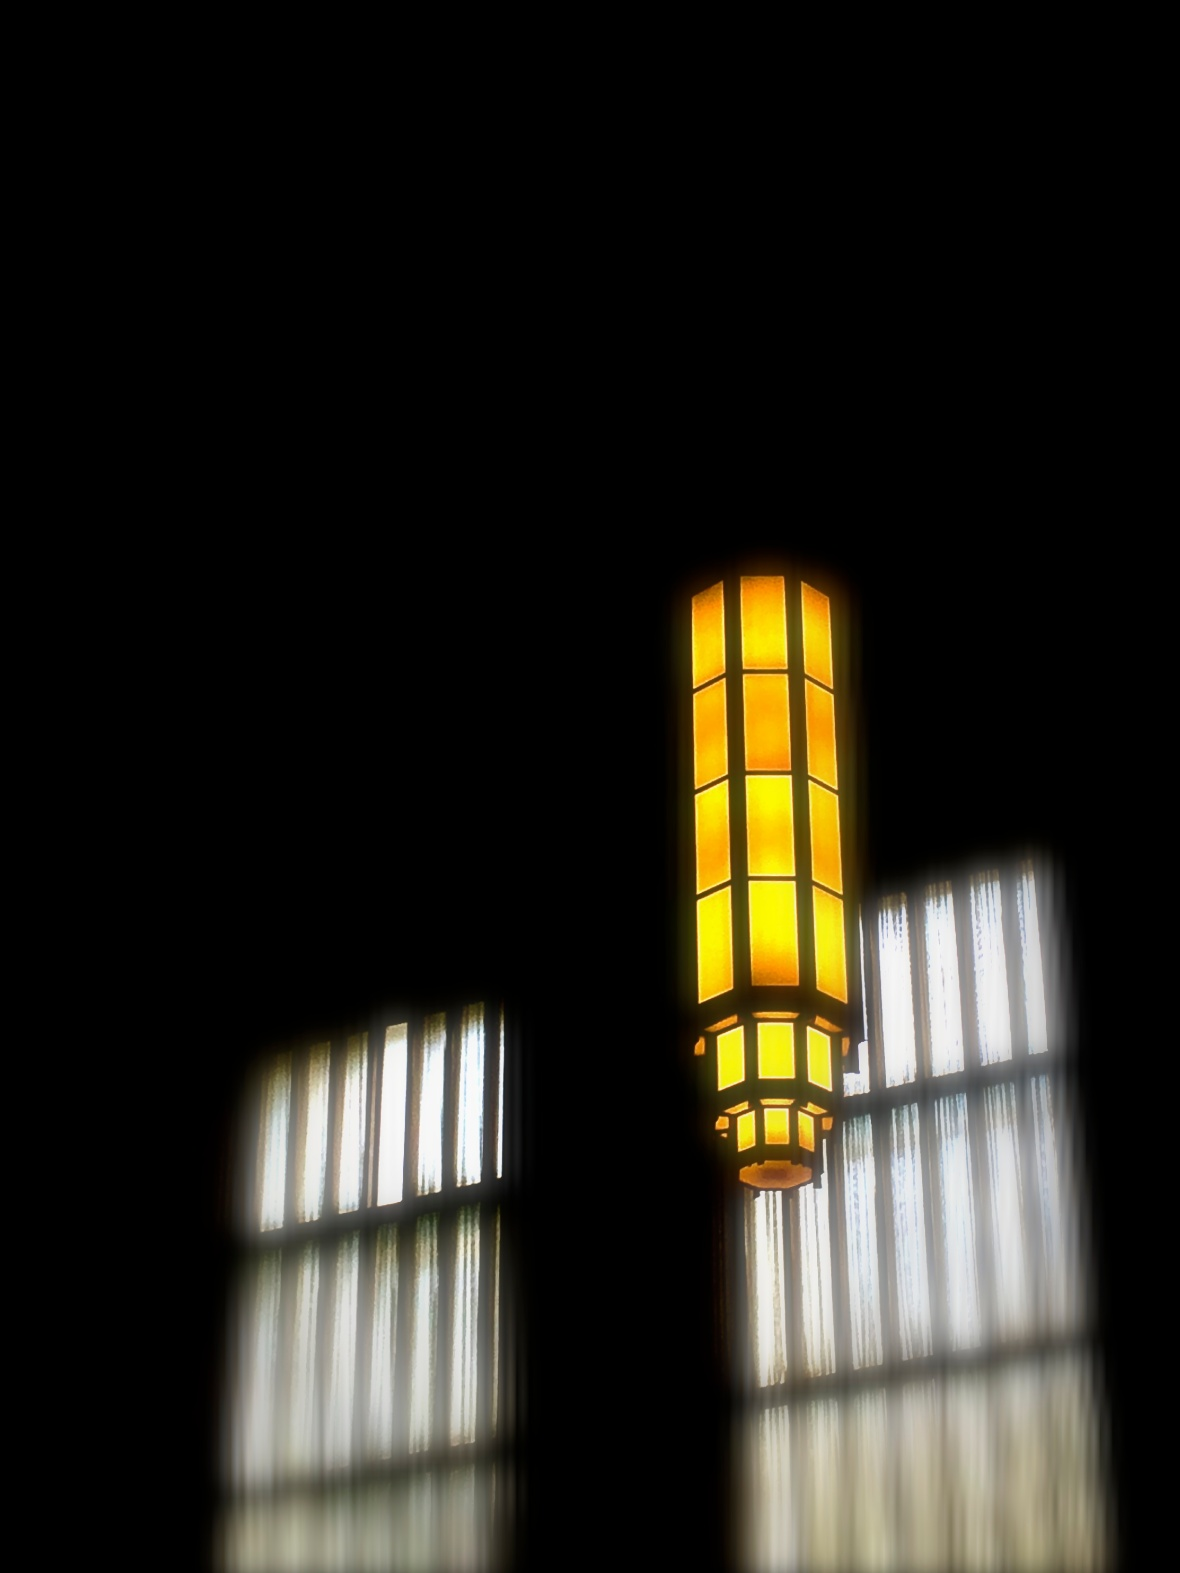 Philly Train Station Lights